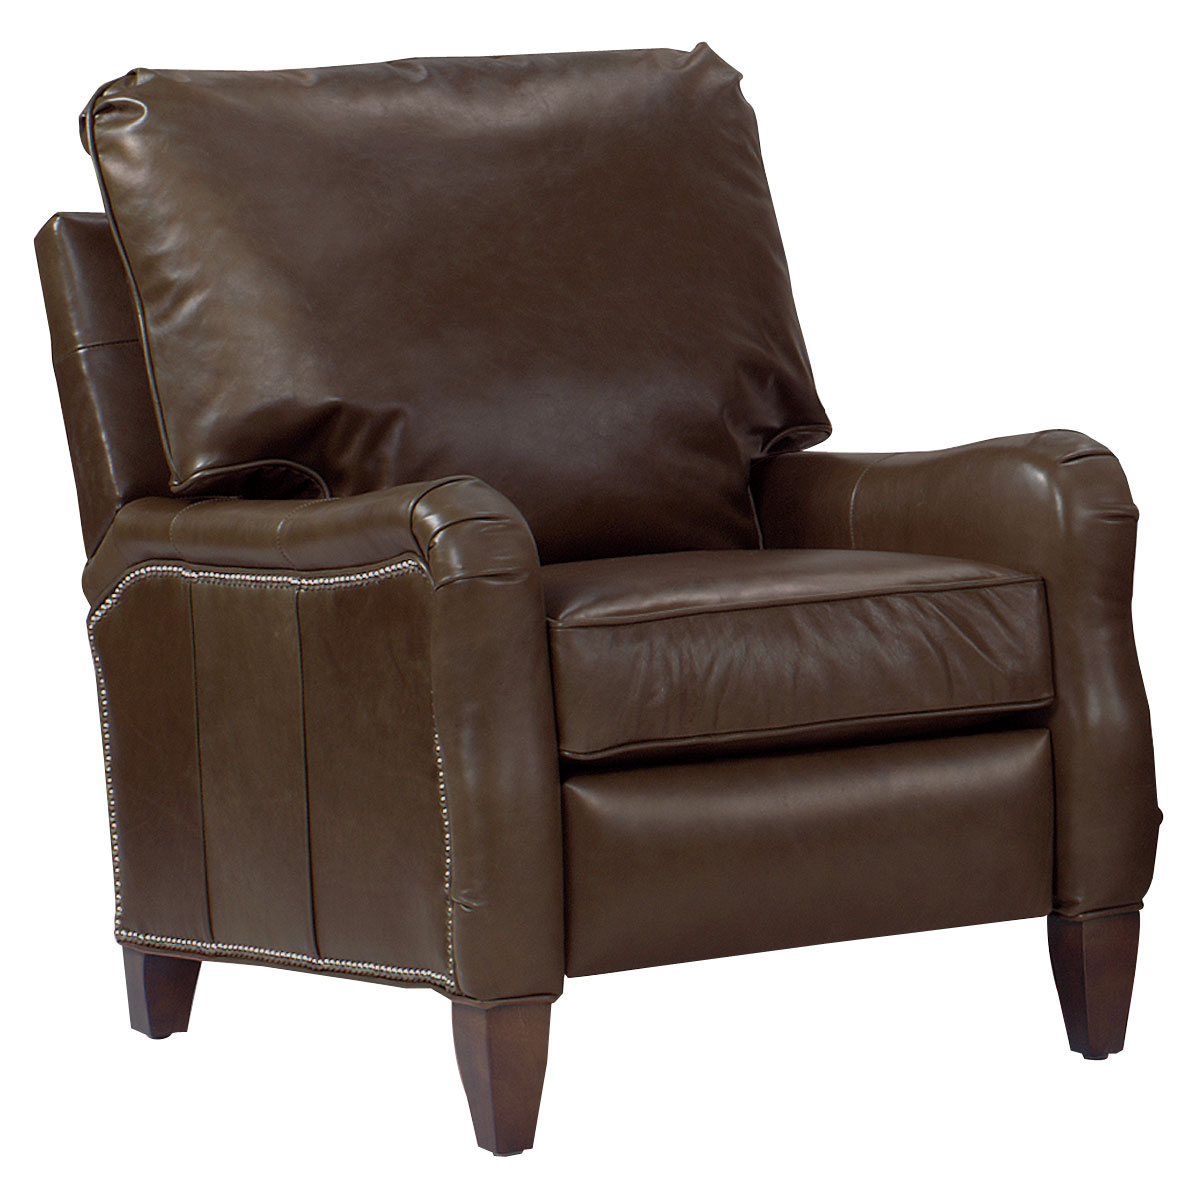 Traditional Pillow Back English Arm Leather Recliner